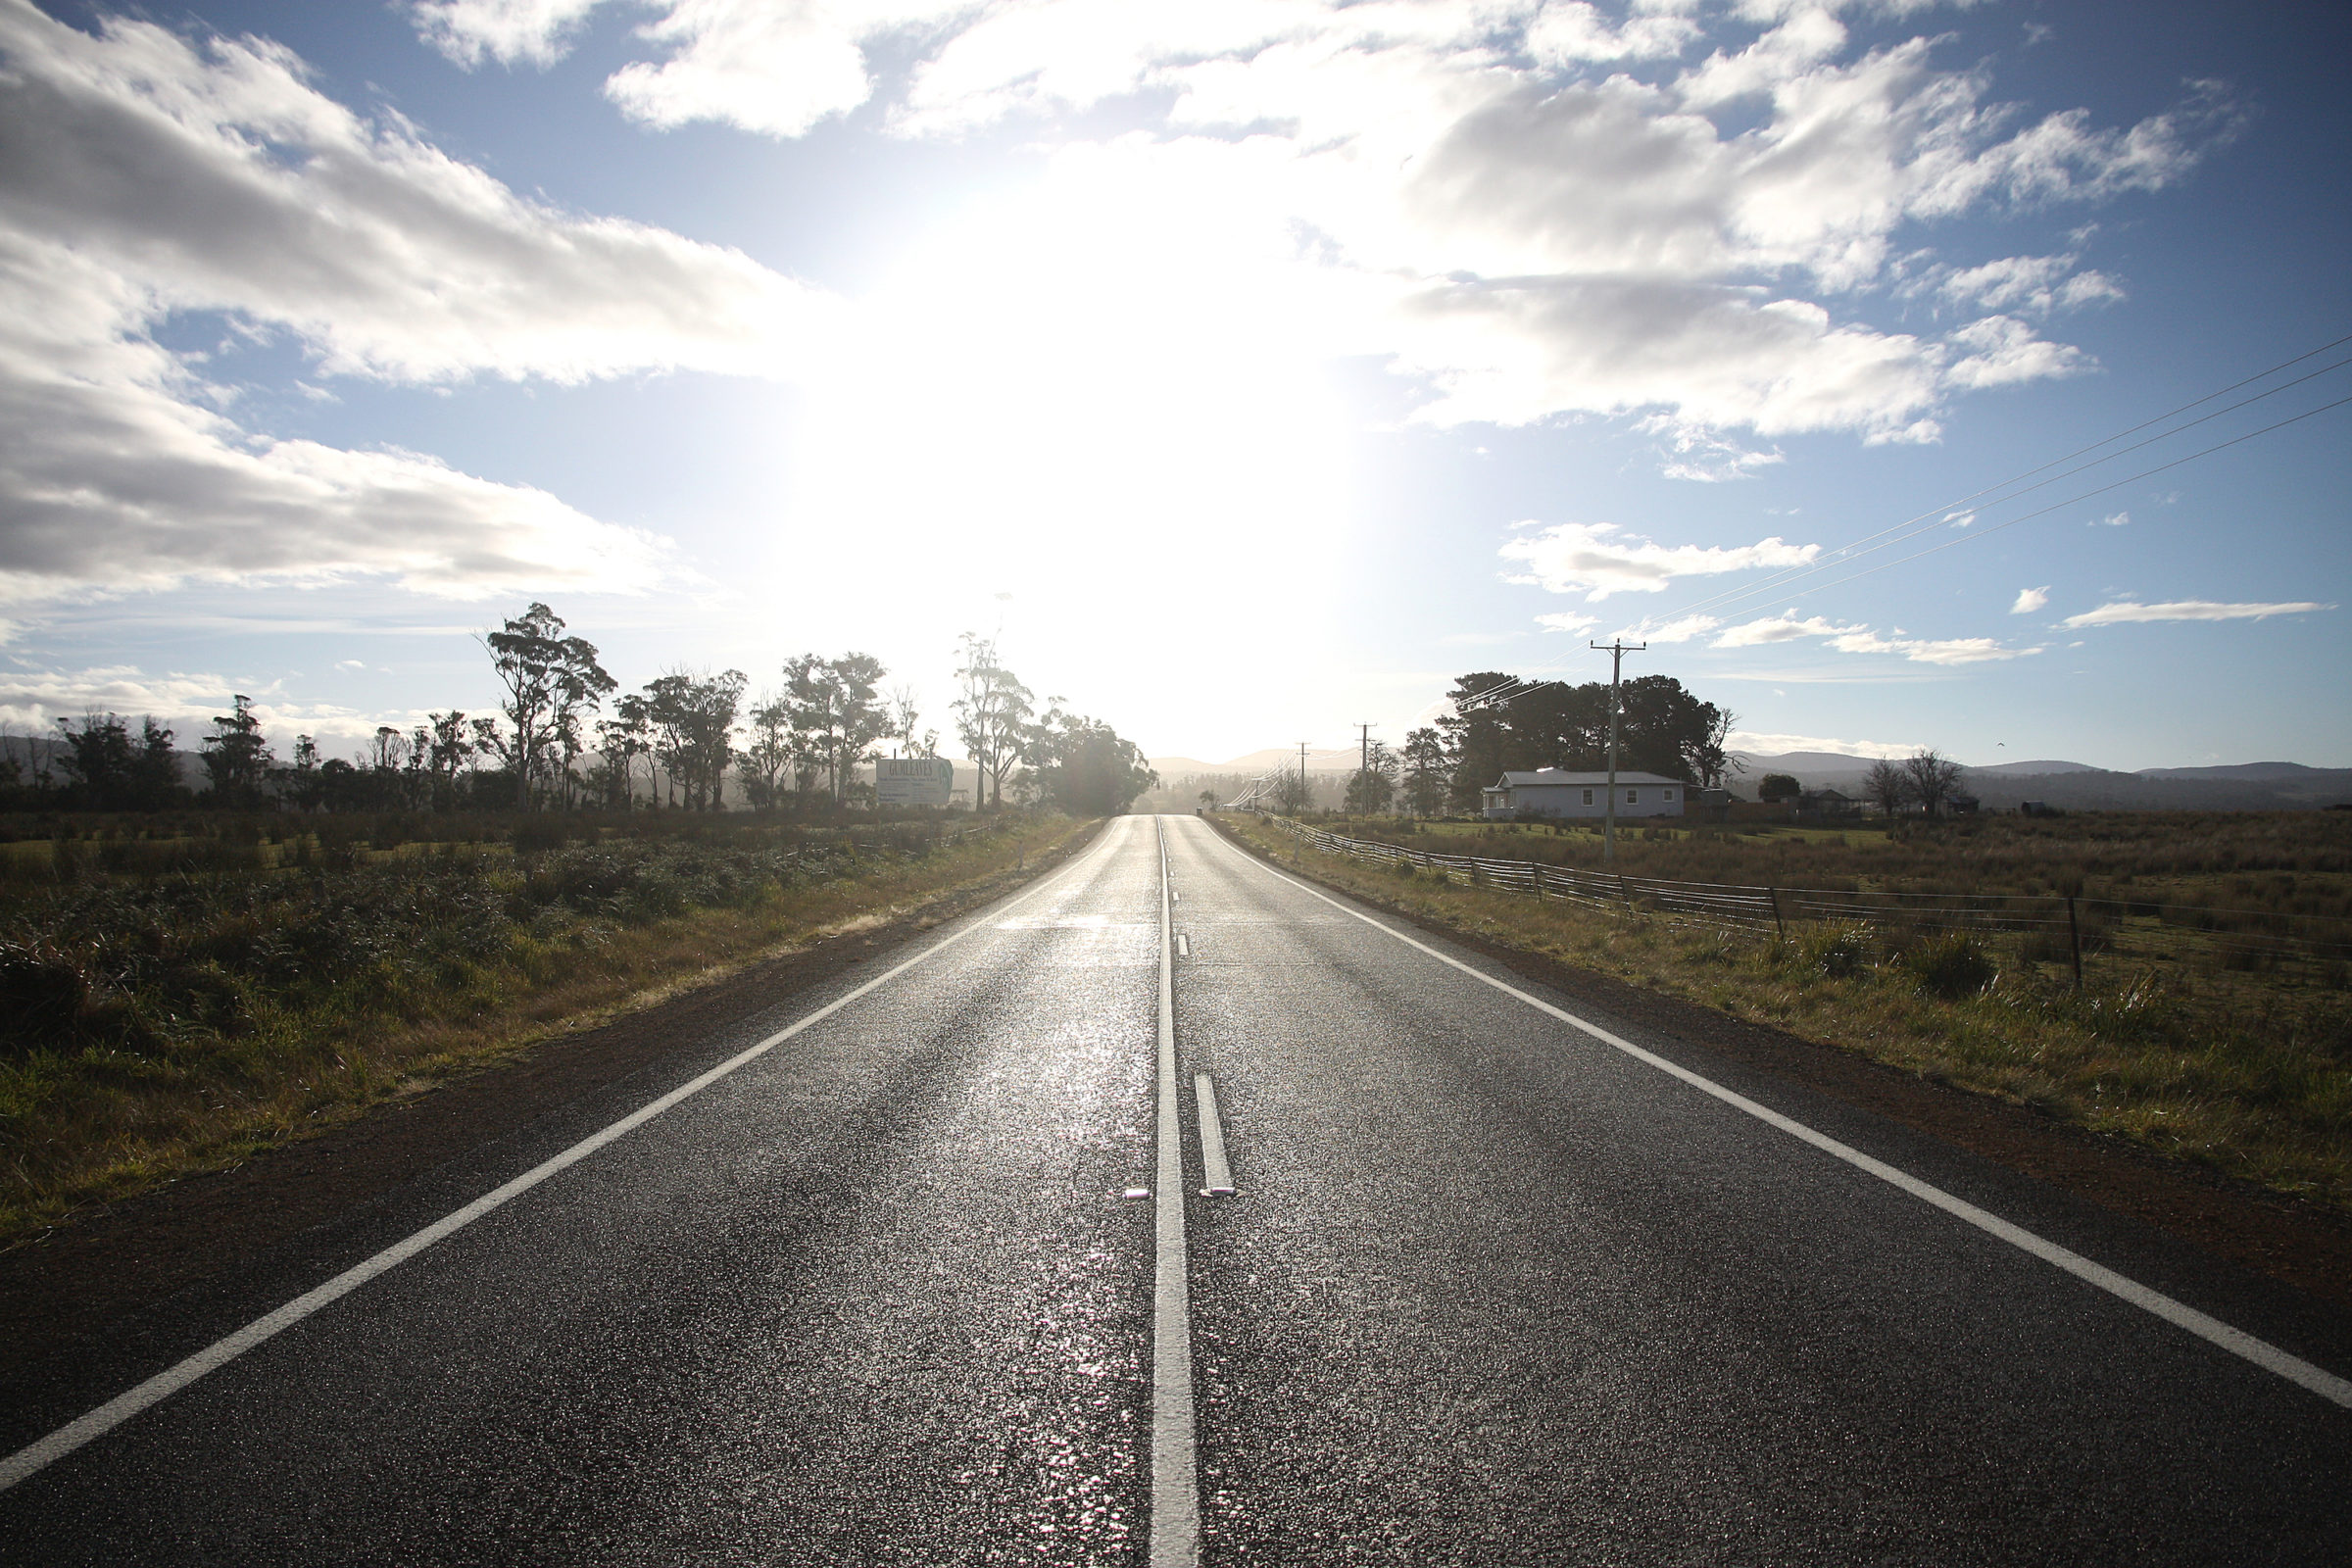 1000km, 100kg, 10 Days, and 1 Scenic Tasmania Self-Drive Road Trip (Itinerary Included)